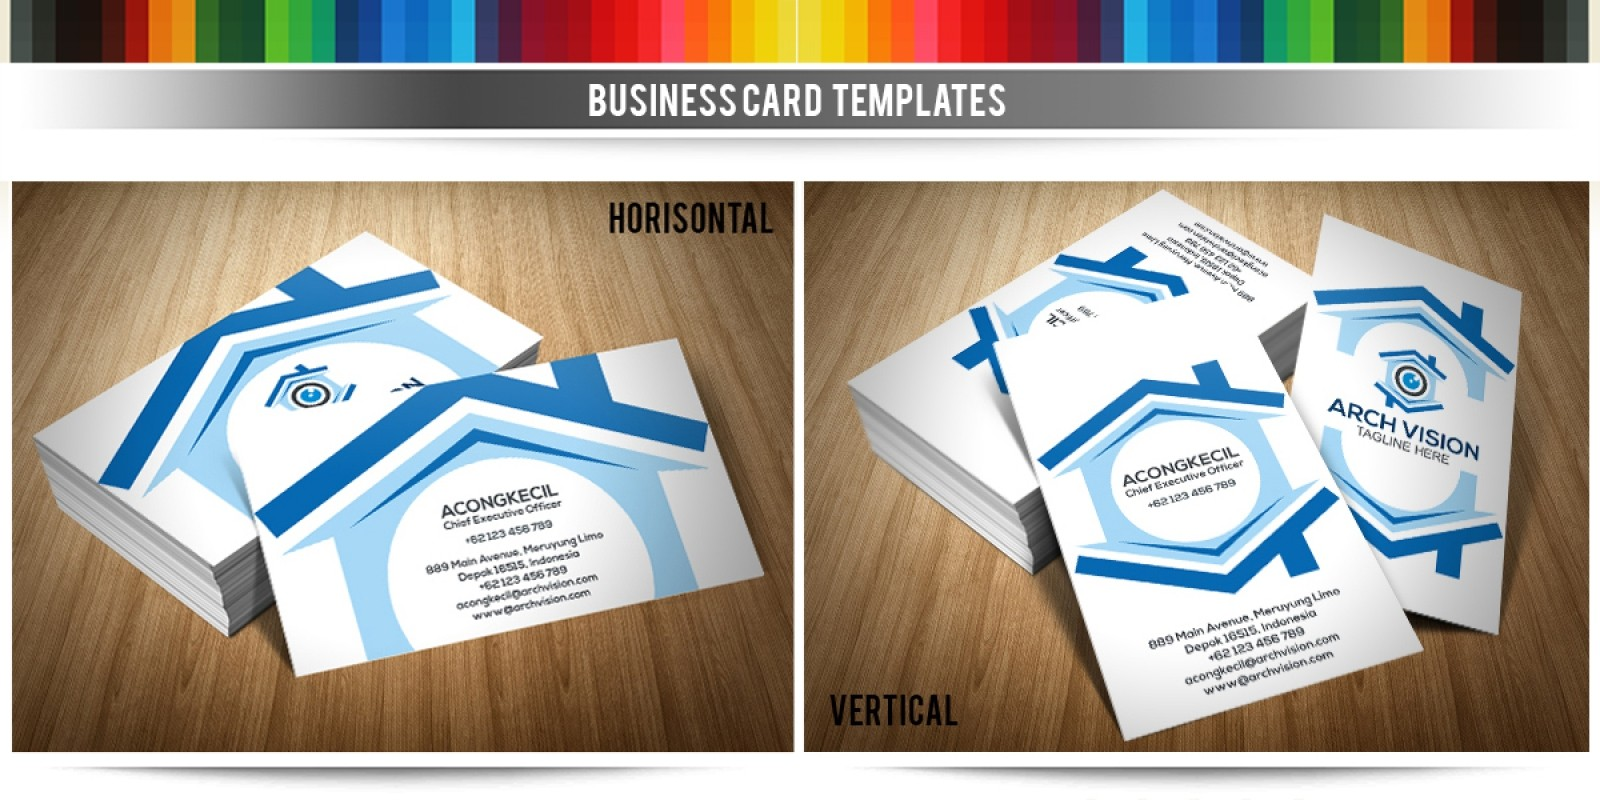 Arch vision premium business card template codester arch vision premium business card template cheaphphosting Choice Image